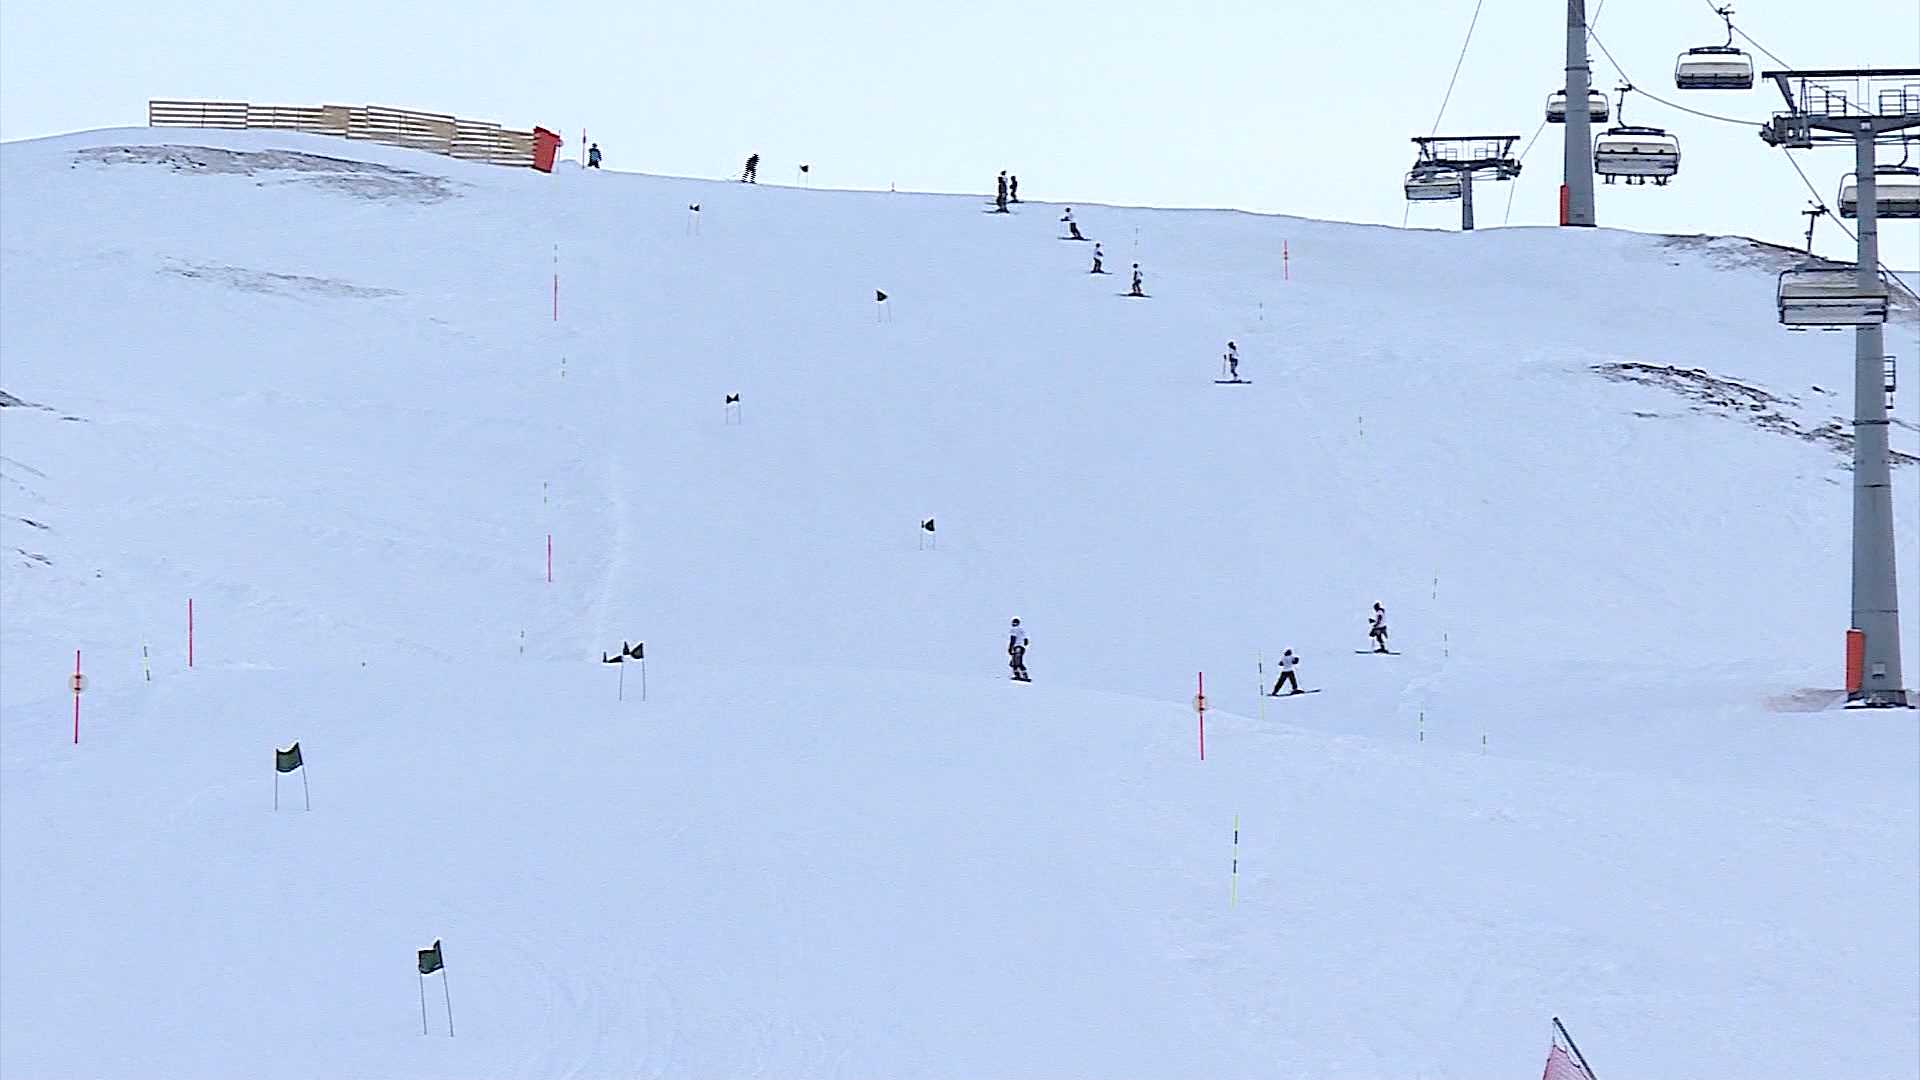 Snow International Day celebrated in Goderdzi with skiing competition